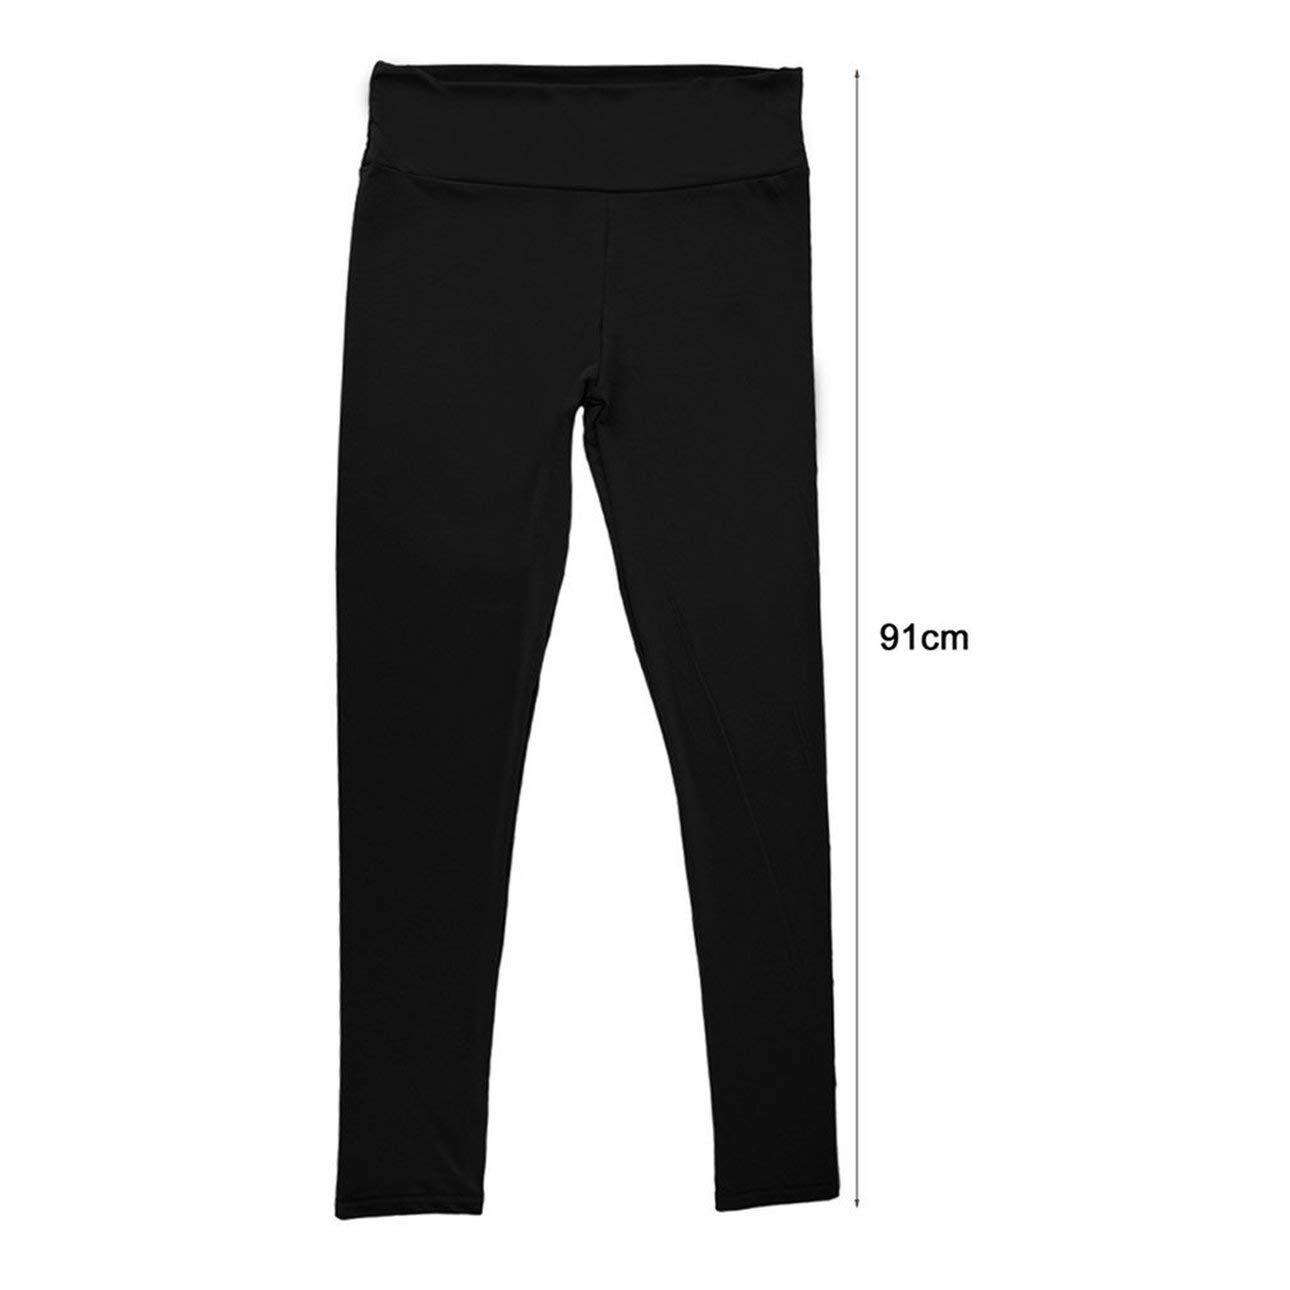 2c8e4b924a1e Amazon.com : Liobaba Womens Stretchy Pants Elastic Trouser Sport ...